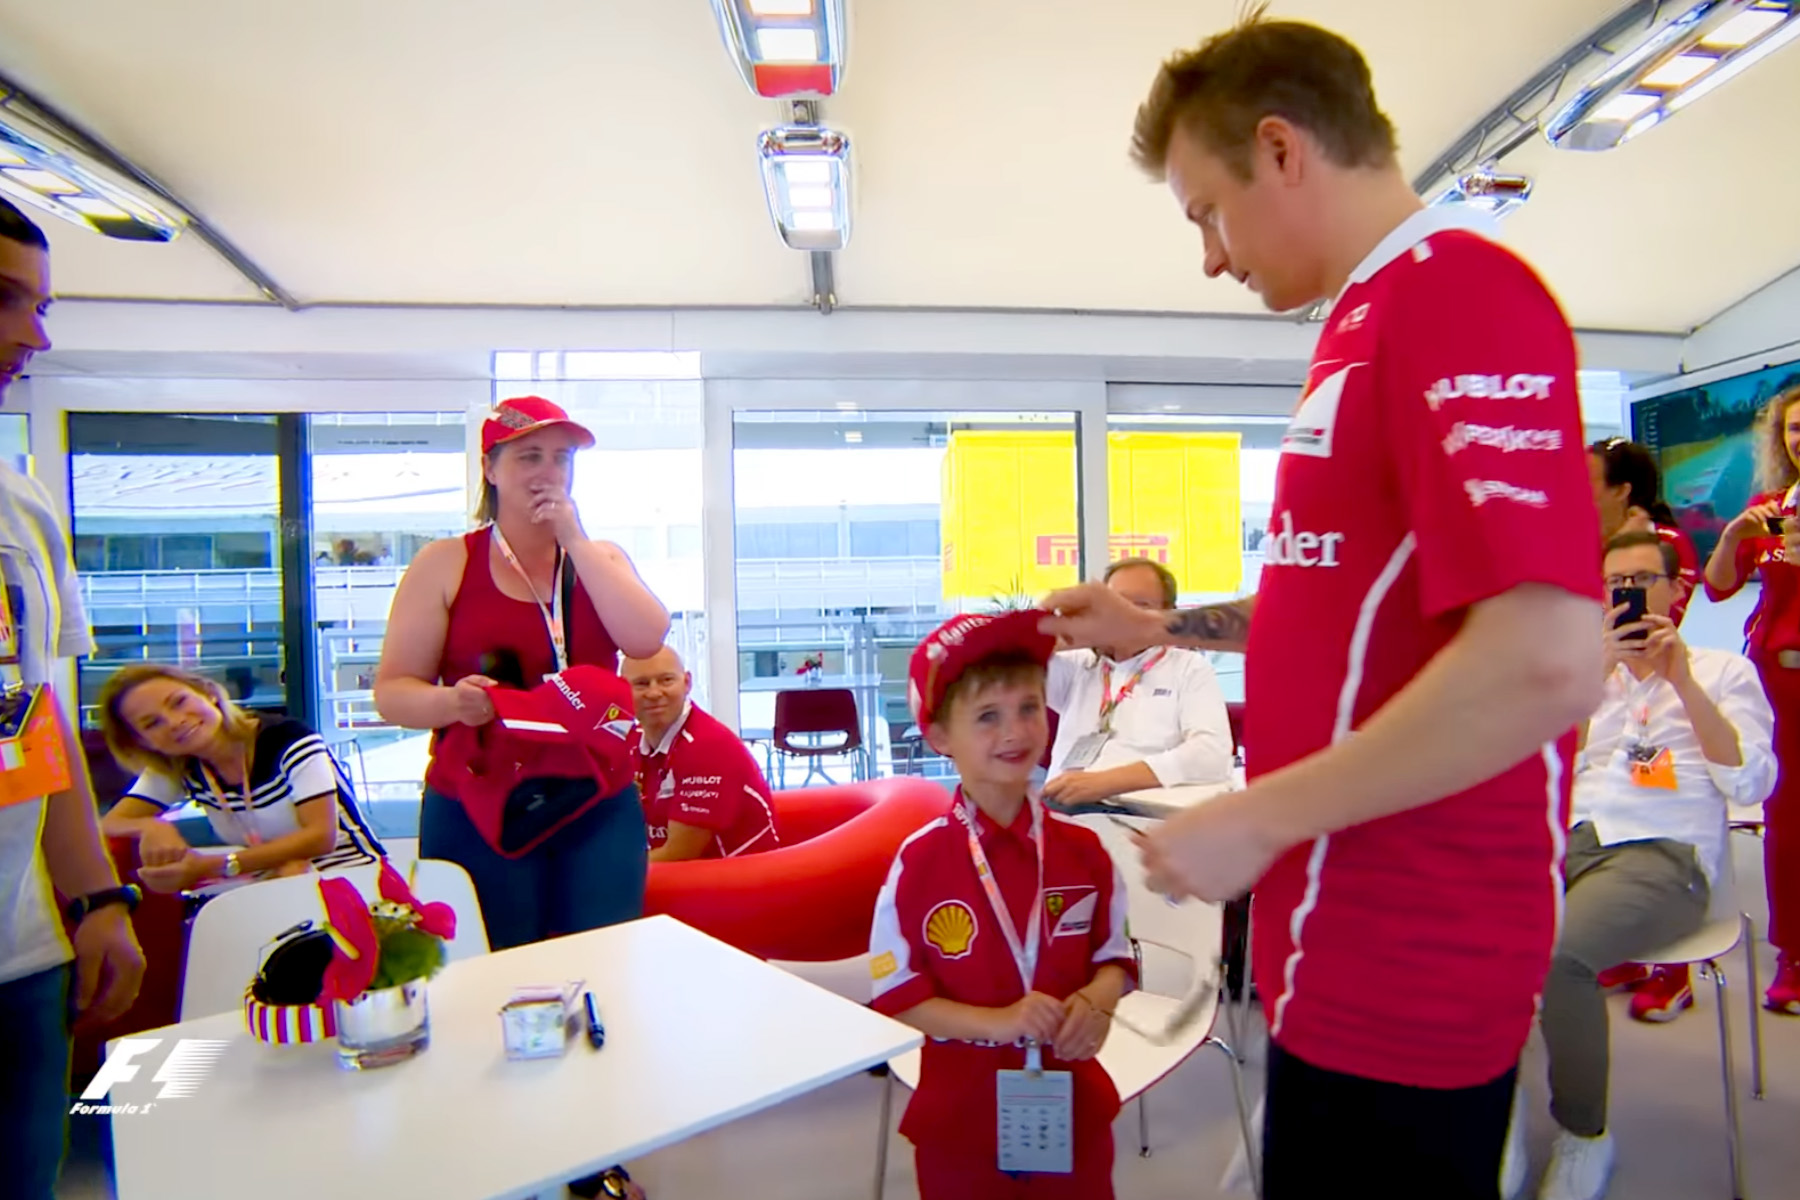 Ferrari's Kimi Raikkonen gives an autographed cap to a young fan